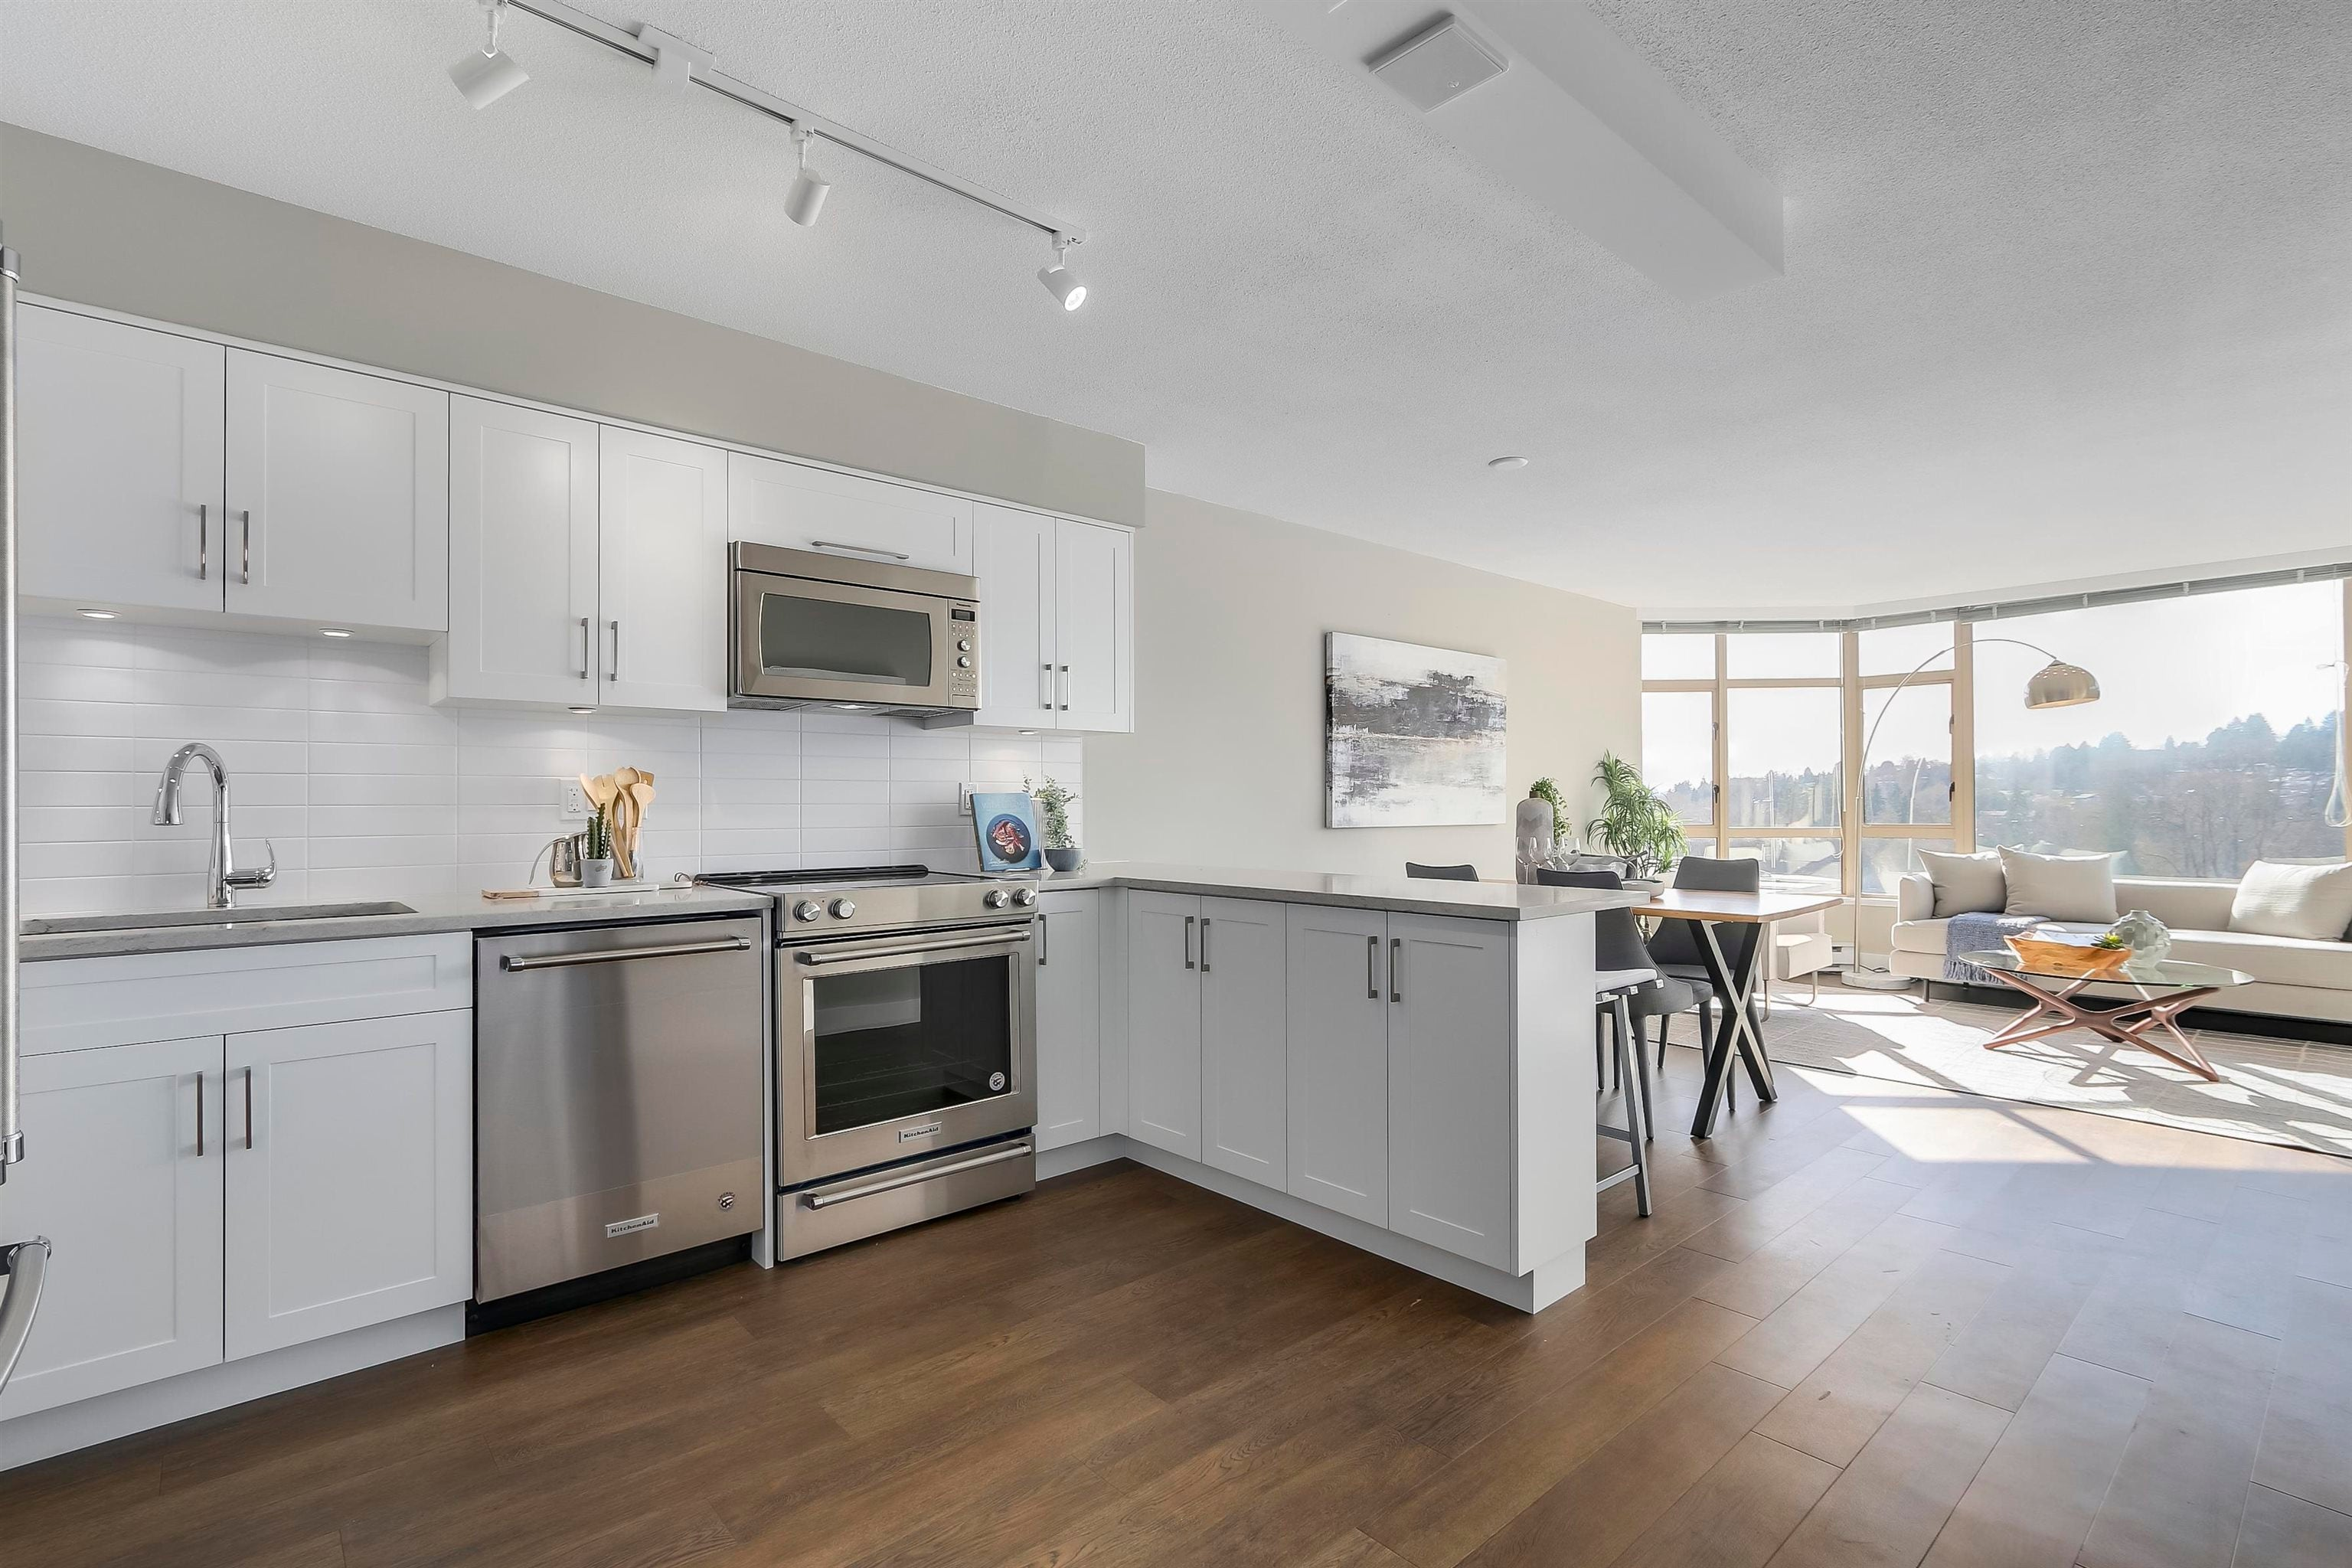 1405 1327 E KEITH ROAD - Lynnmour Apartment/Condo for sale, 2 Bedrooms (R2625739) - #10